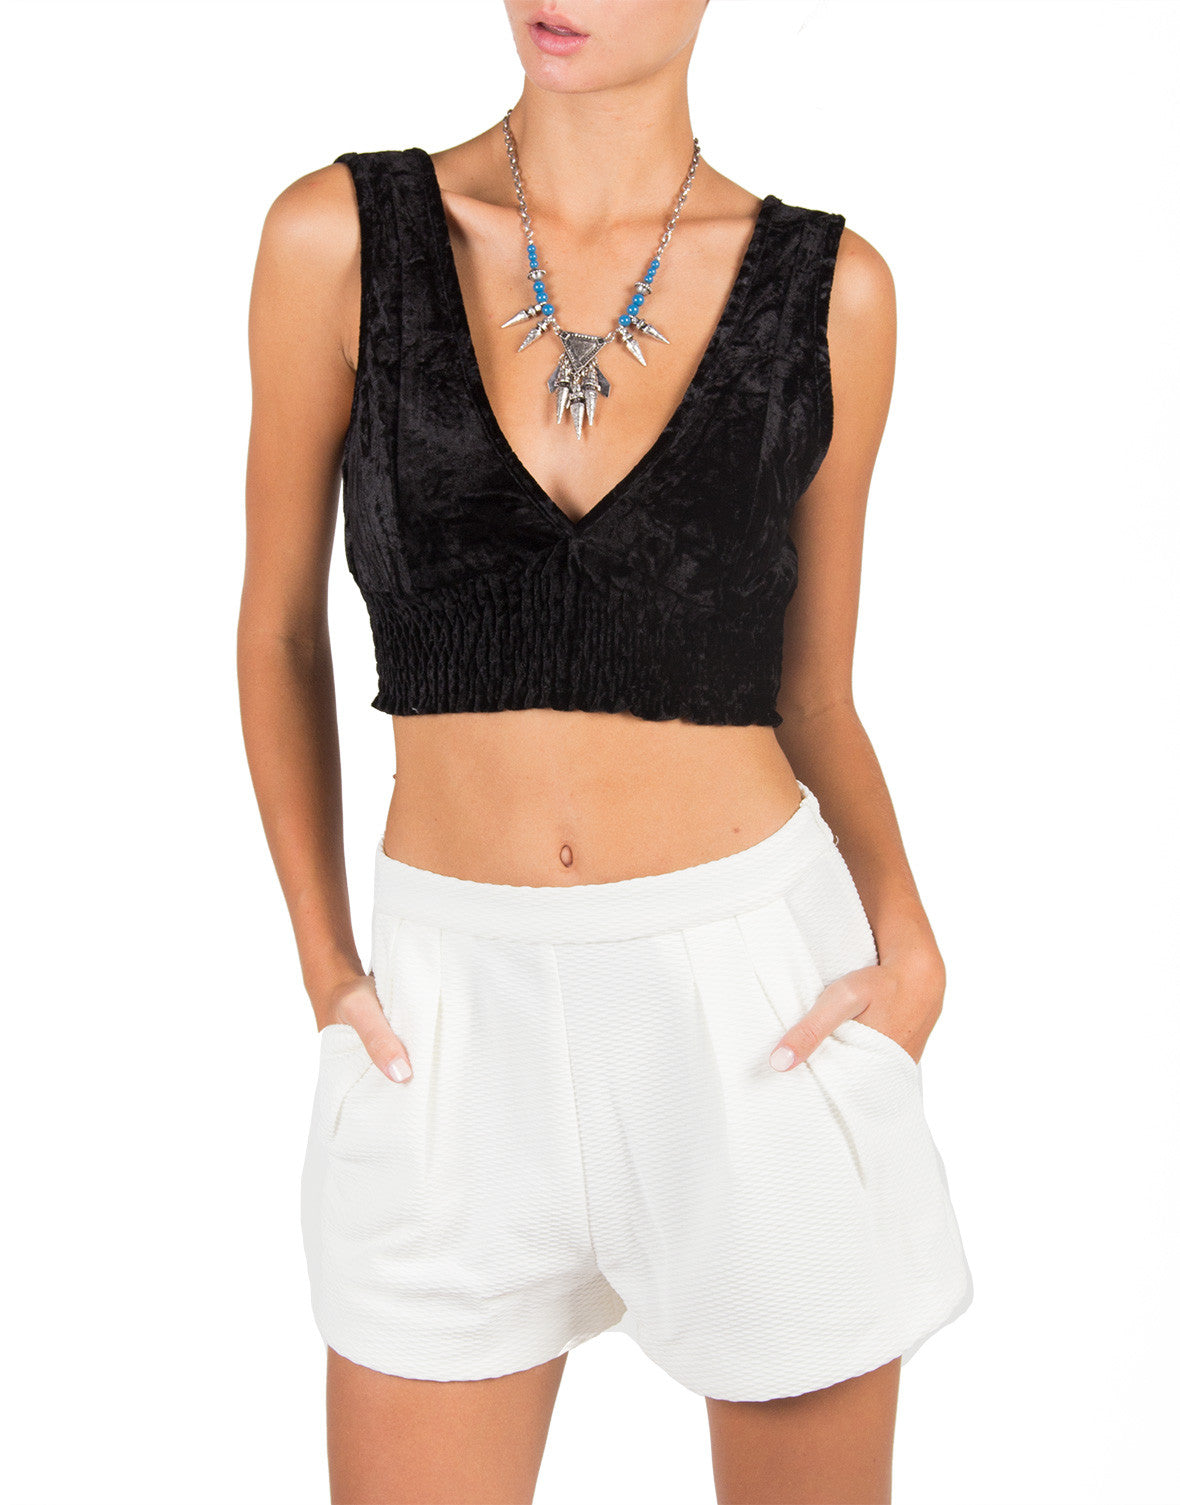 Smocked Velvet Deep V Crop Top - Black - Cotton Candy CT-5089-Black